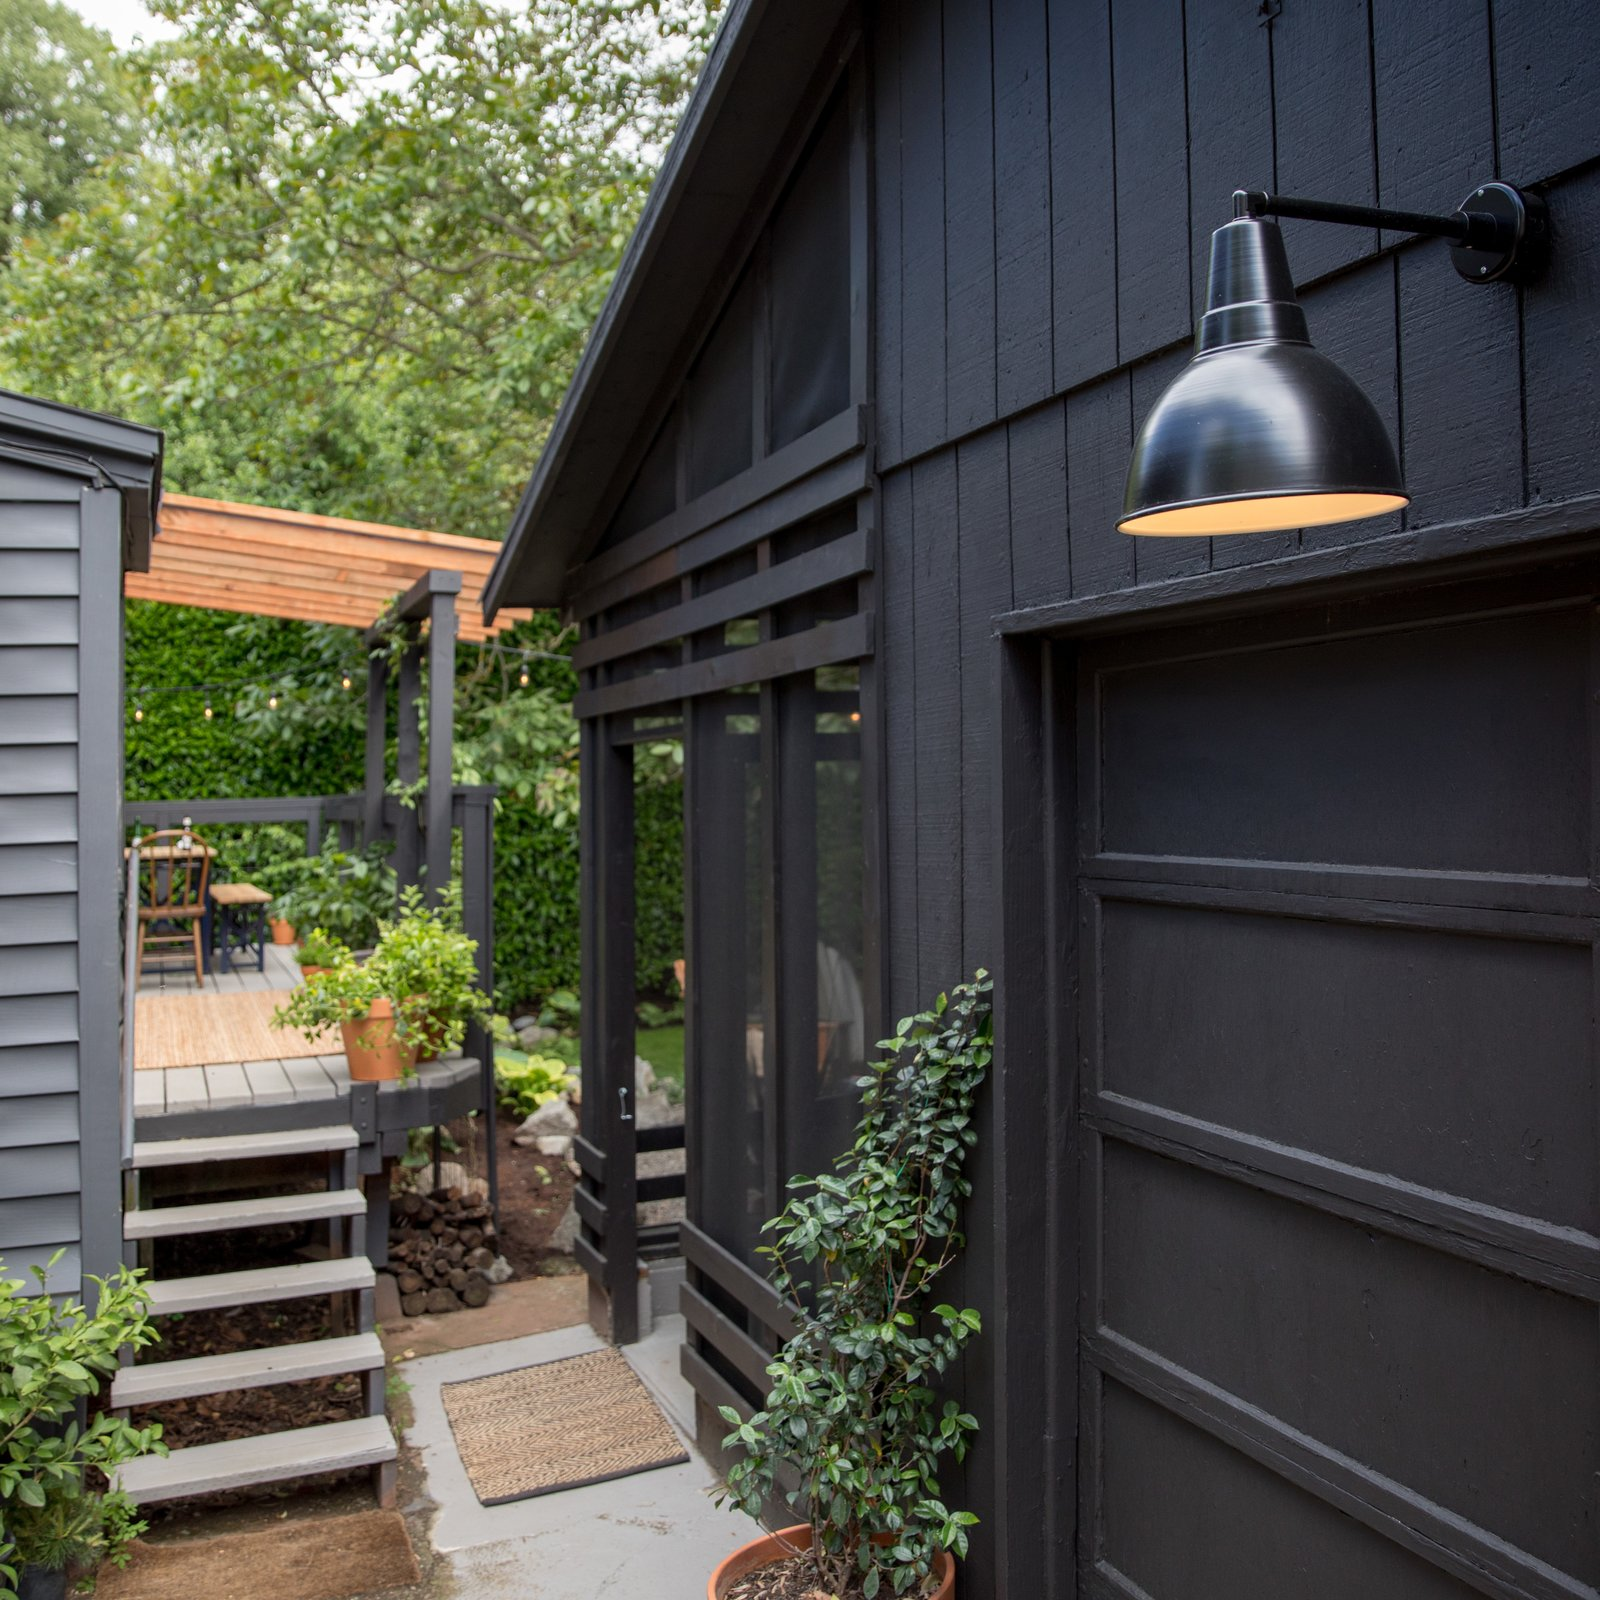 Exterior, House, Wood, and Shed A view of the new screened porch from the driveway. The light is the Factory Modern No. 6 Outdoor Sconce from Schoolhouse Electric.  Exterior Shed Wood Photos from Budget Breakdown: A Weekend DIY Turns a Neglected Garage Into a Backyard Hangout for $13K